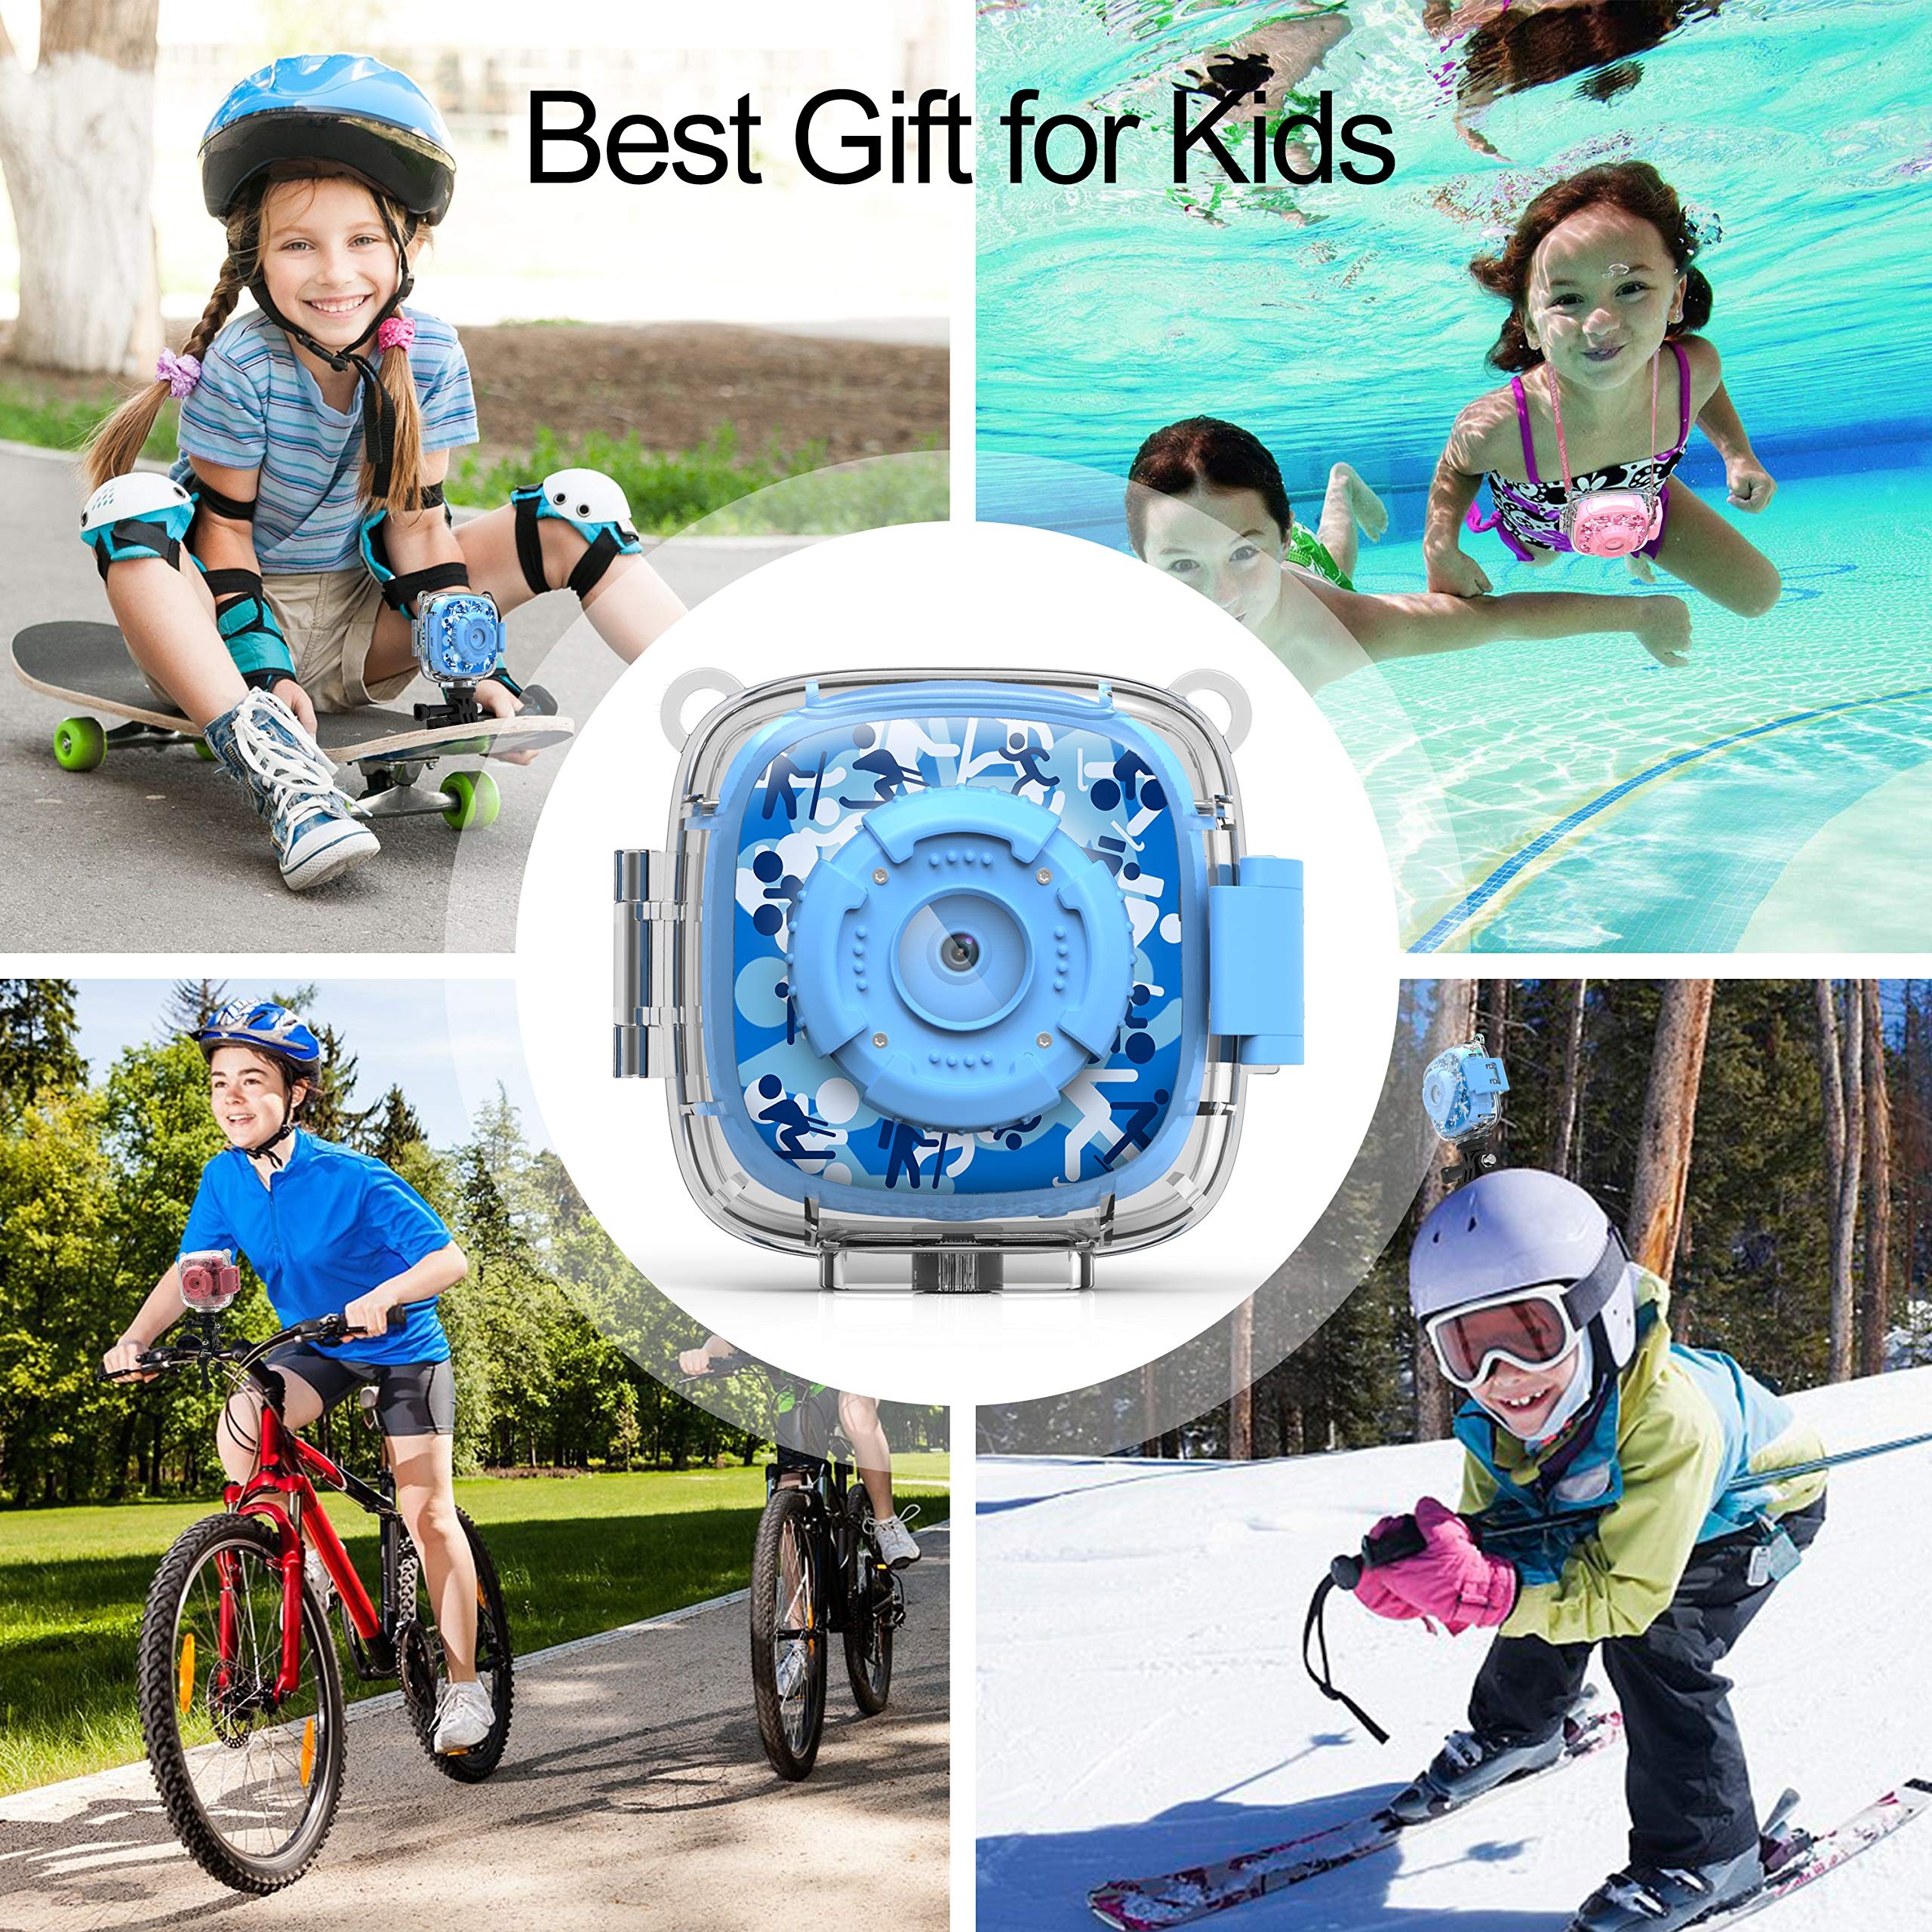 AKAMATE Kids Action Camera Waterproof Video Digital Children Cam 1080P HD Sports Camera Camcorder for Boys Girls, Build-in 3 Games, 32GB SD Card (Blue) by AKAMATE (Image #7)